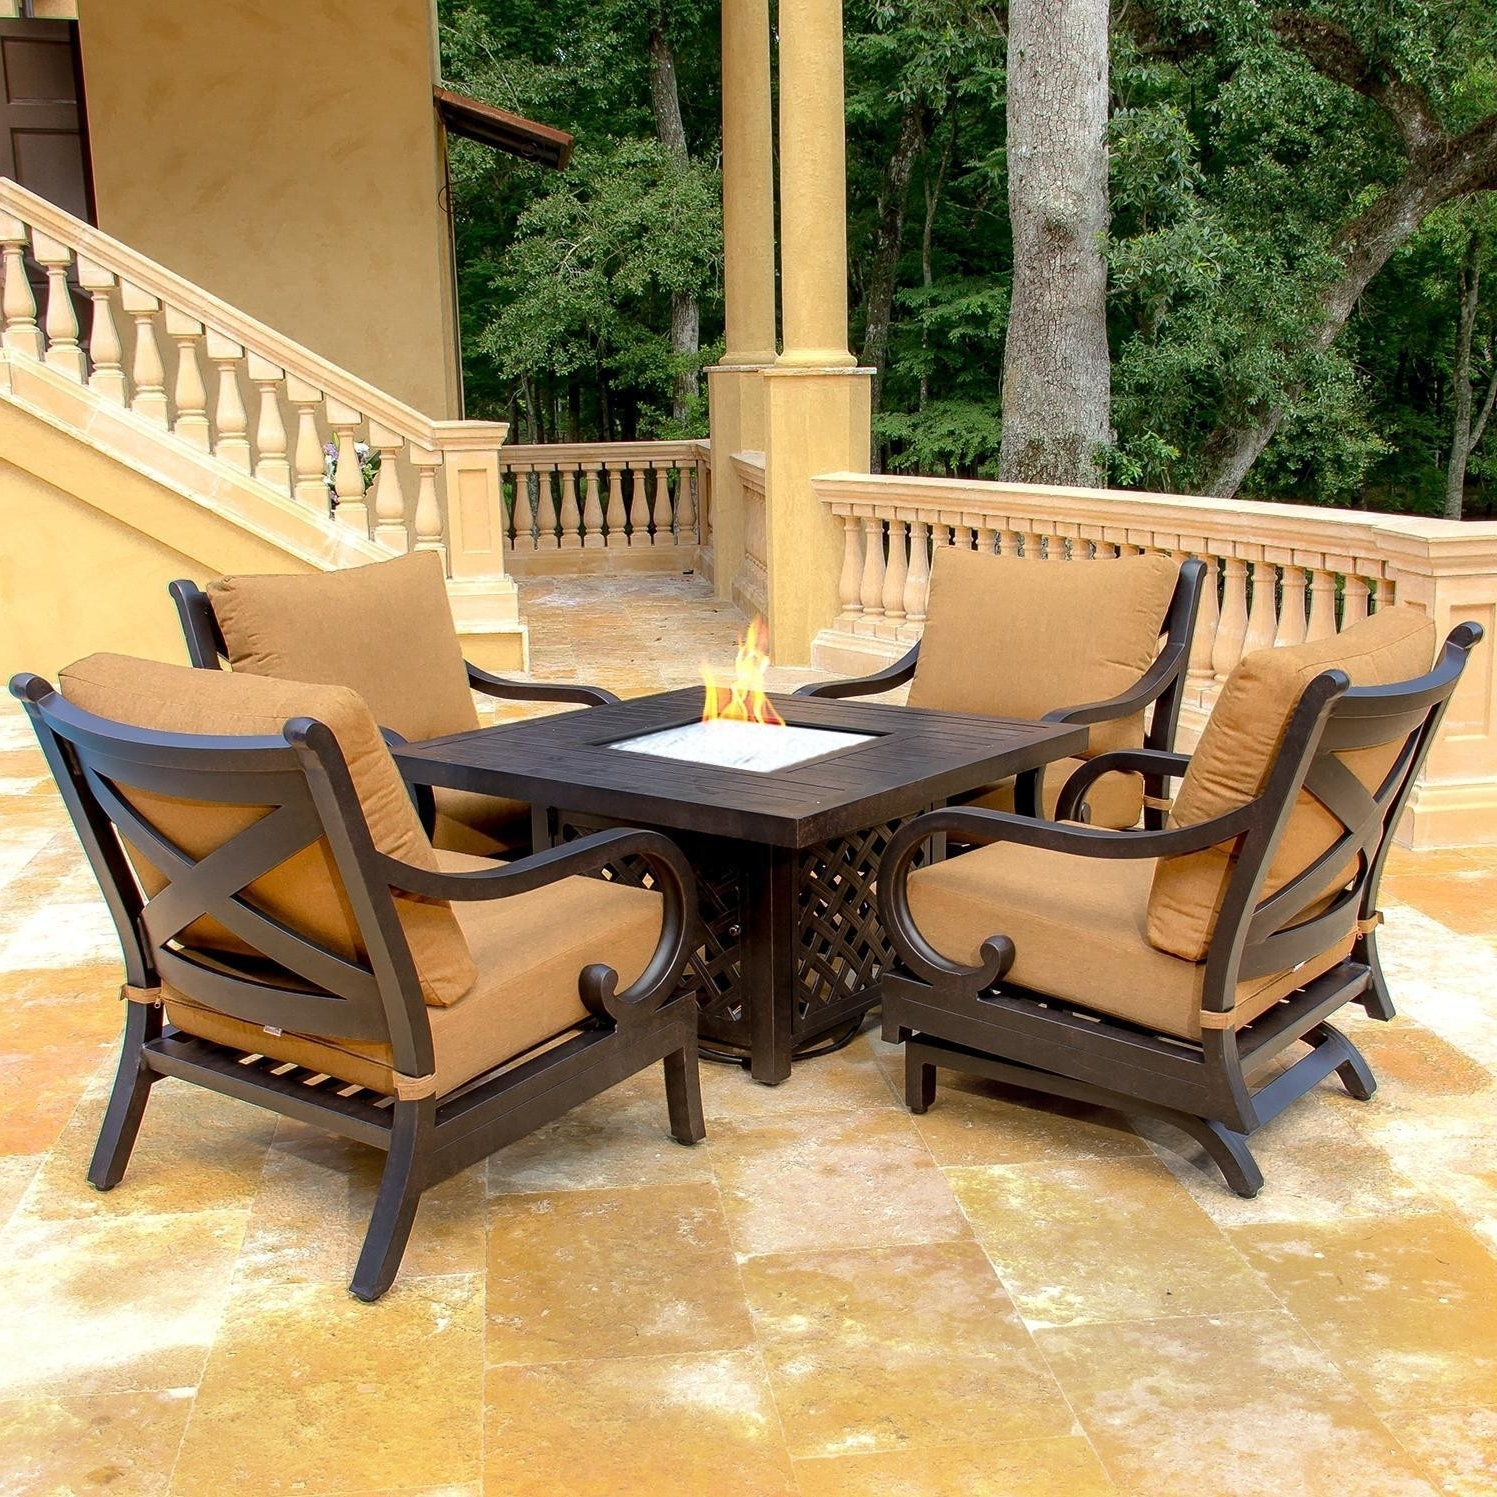 2019 Deep Seating Patio Furniture Awesome Conversation Sets Patio From Regarding Deep Seating Patio Conversation Sets (View 1 of 20)